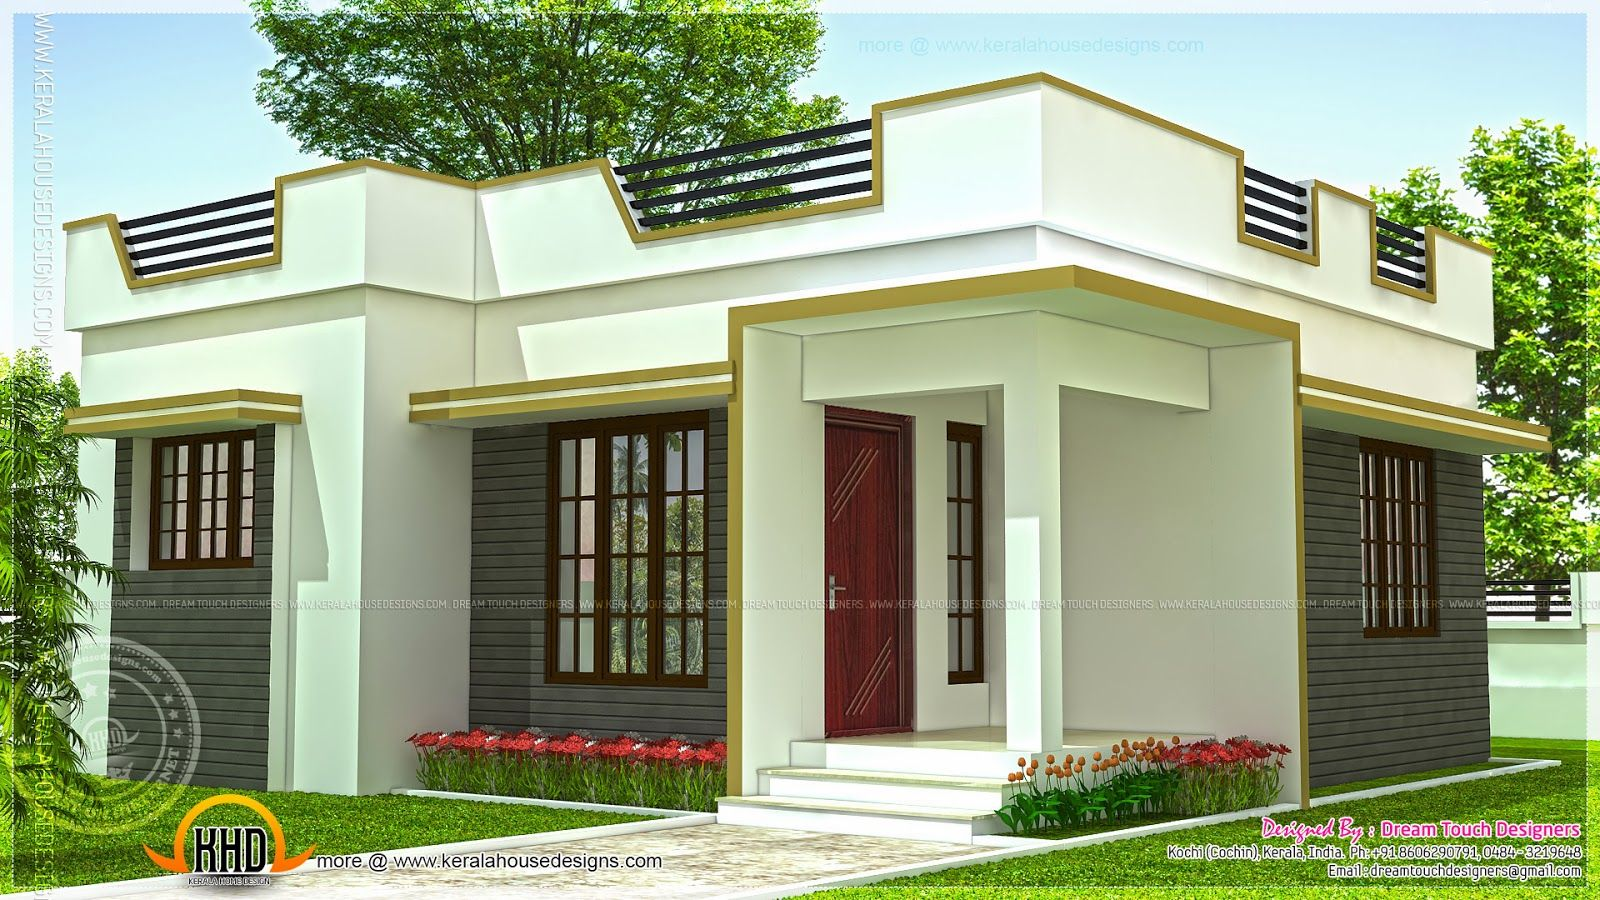 Lately 21 small house design kerala small house for New small home designs in india